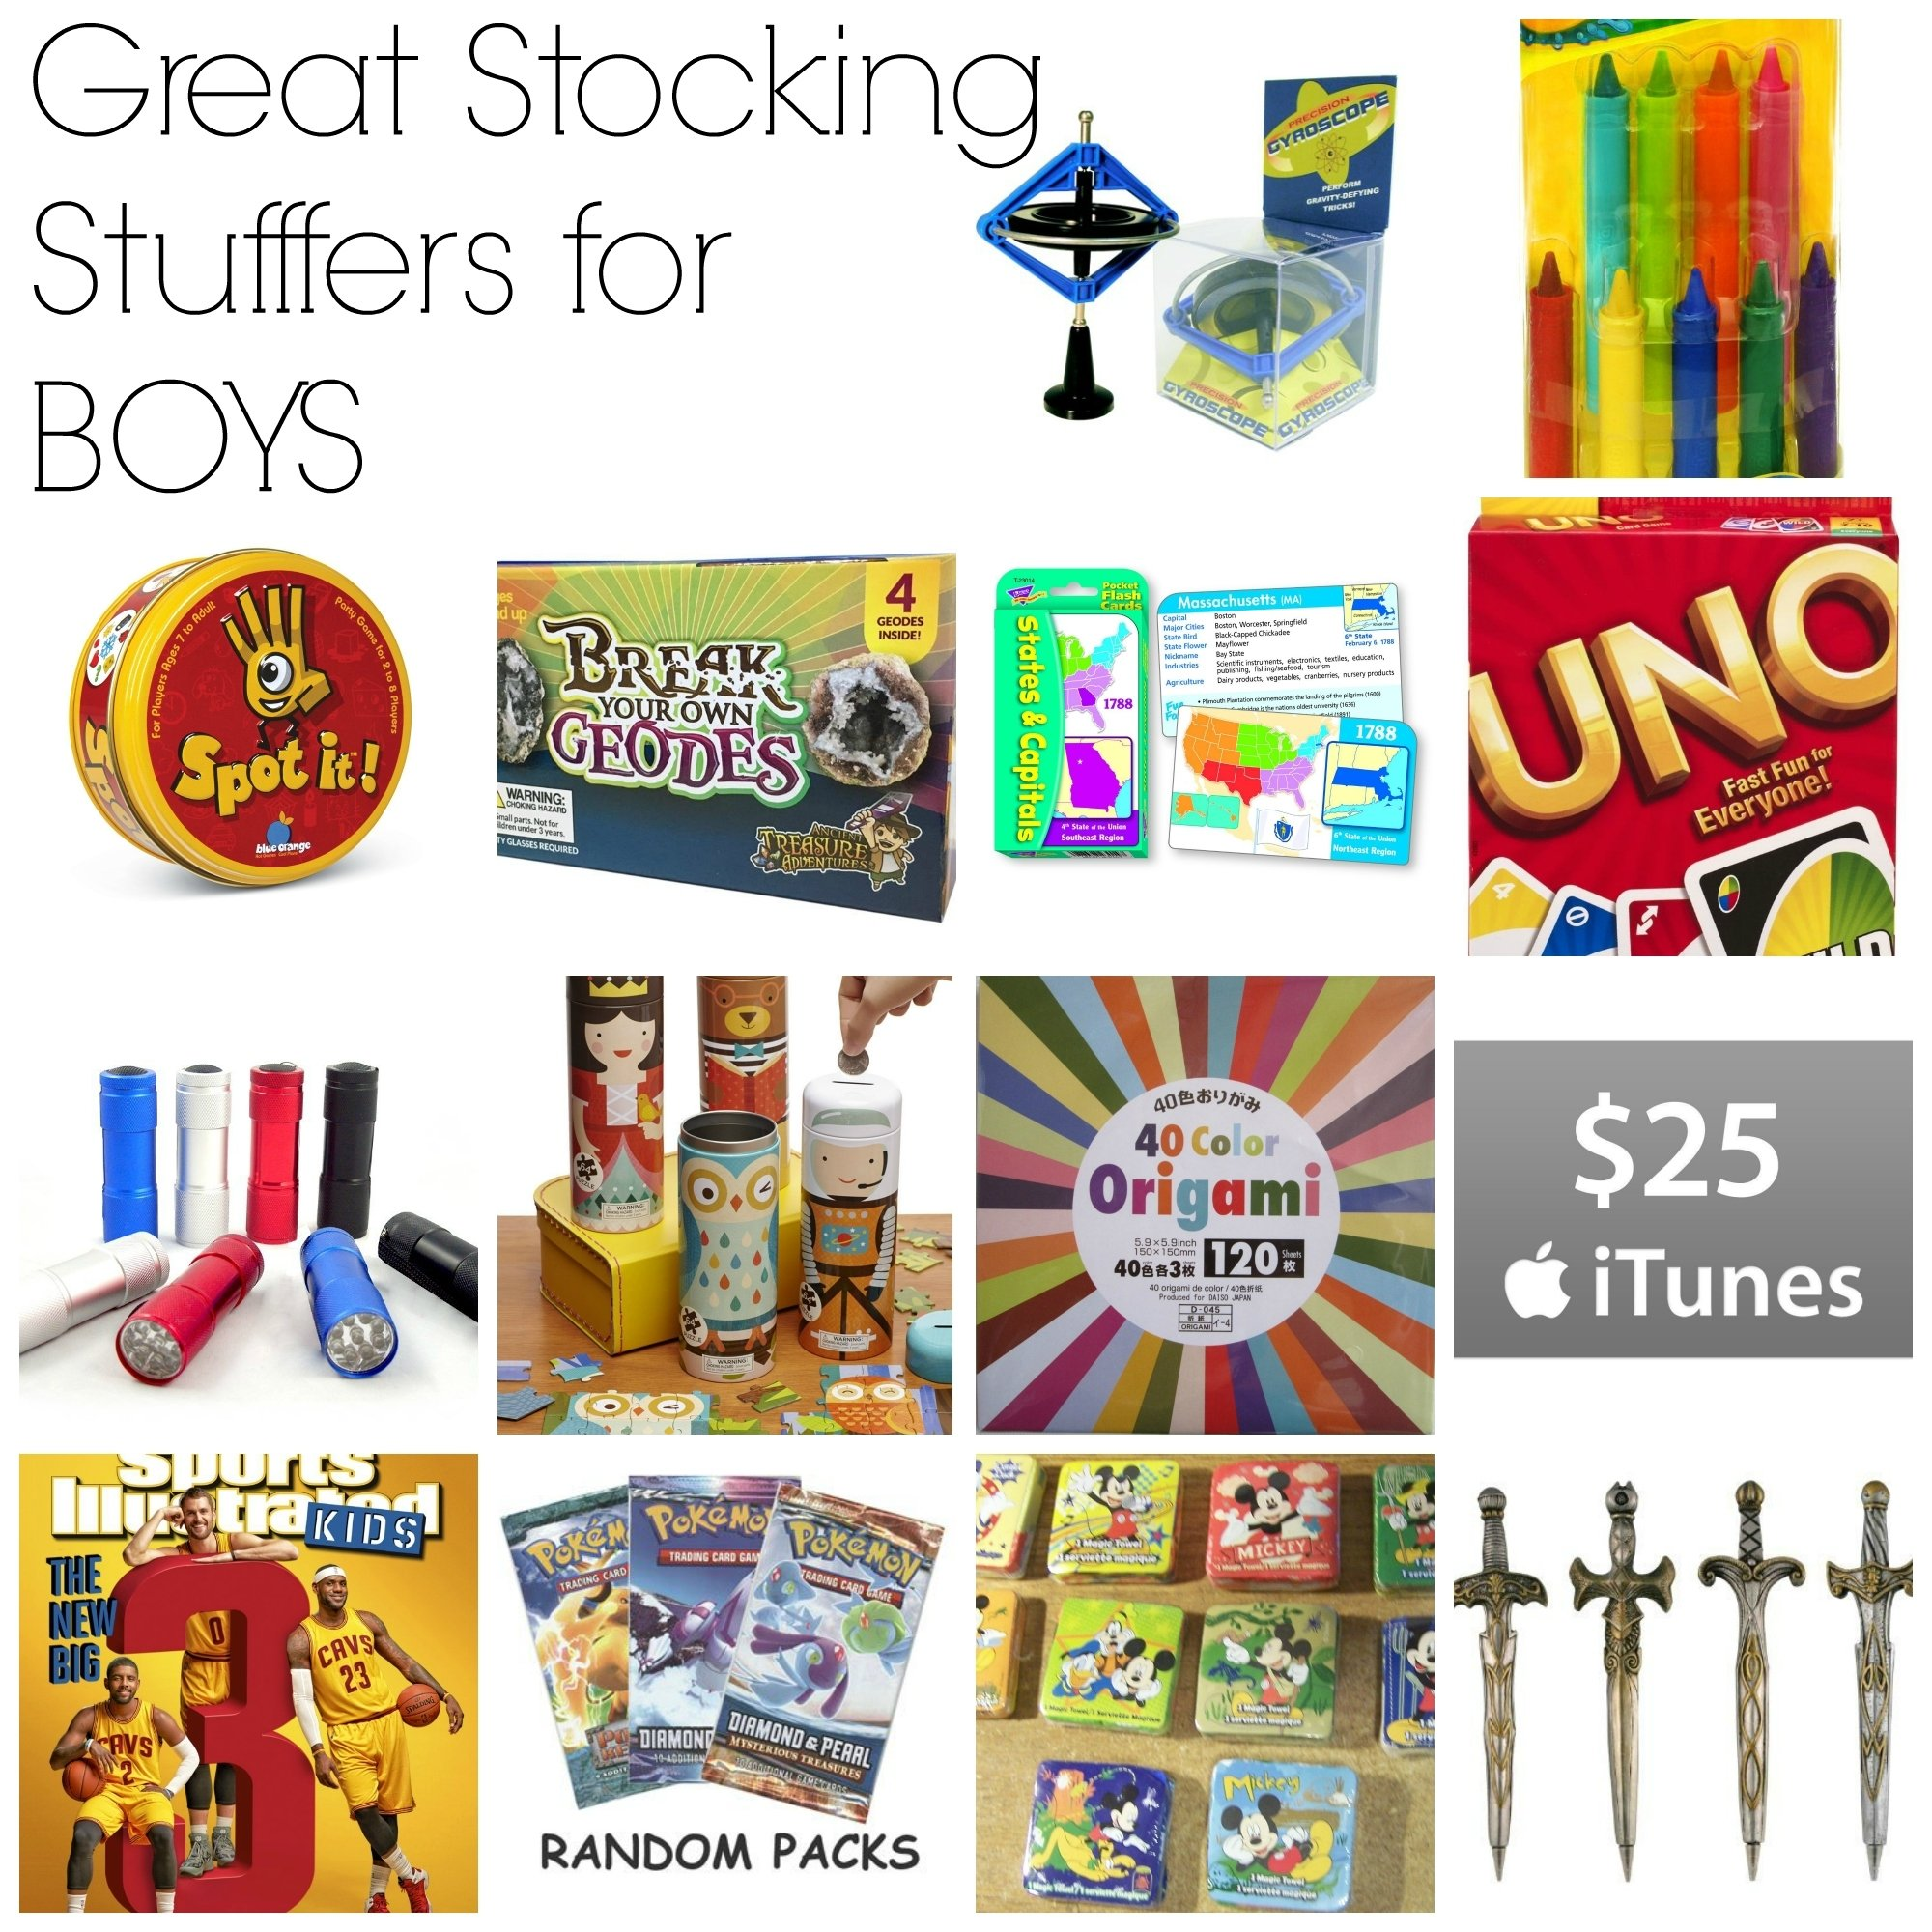 10 Great Stocking Stuffer Ideas For Boys great stocking stuffers for boys brooke romney writes 3 2020